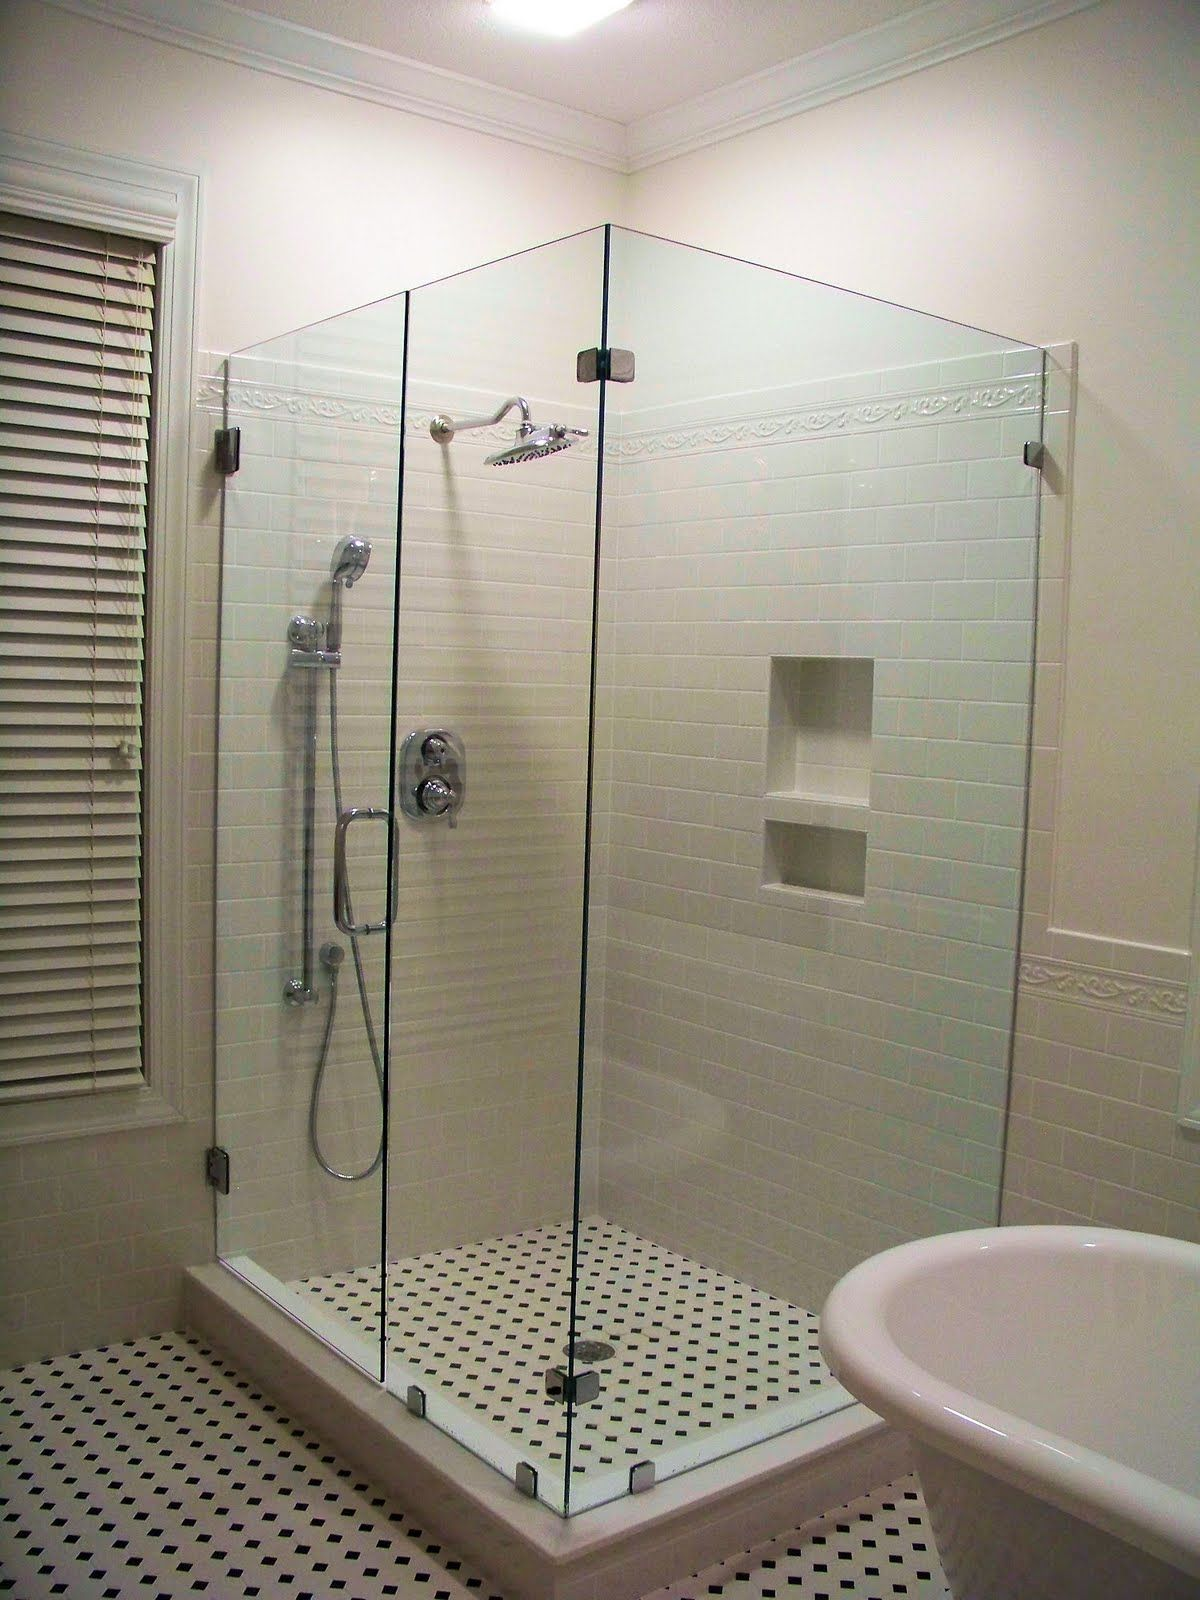 Cute Beautiful Bathrooms With Shower Curtains Tall Bathroom Wall Tiles Pattern Design Clean Led Bathroom Globe Light Bulbs Replace Bathtub Shower Doors Youthful Bathroom Shower Designs DarkPorcelain Tile Bathroom Photos 1000  Images About Master Bathroom On Pinterest | Traditional ..